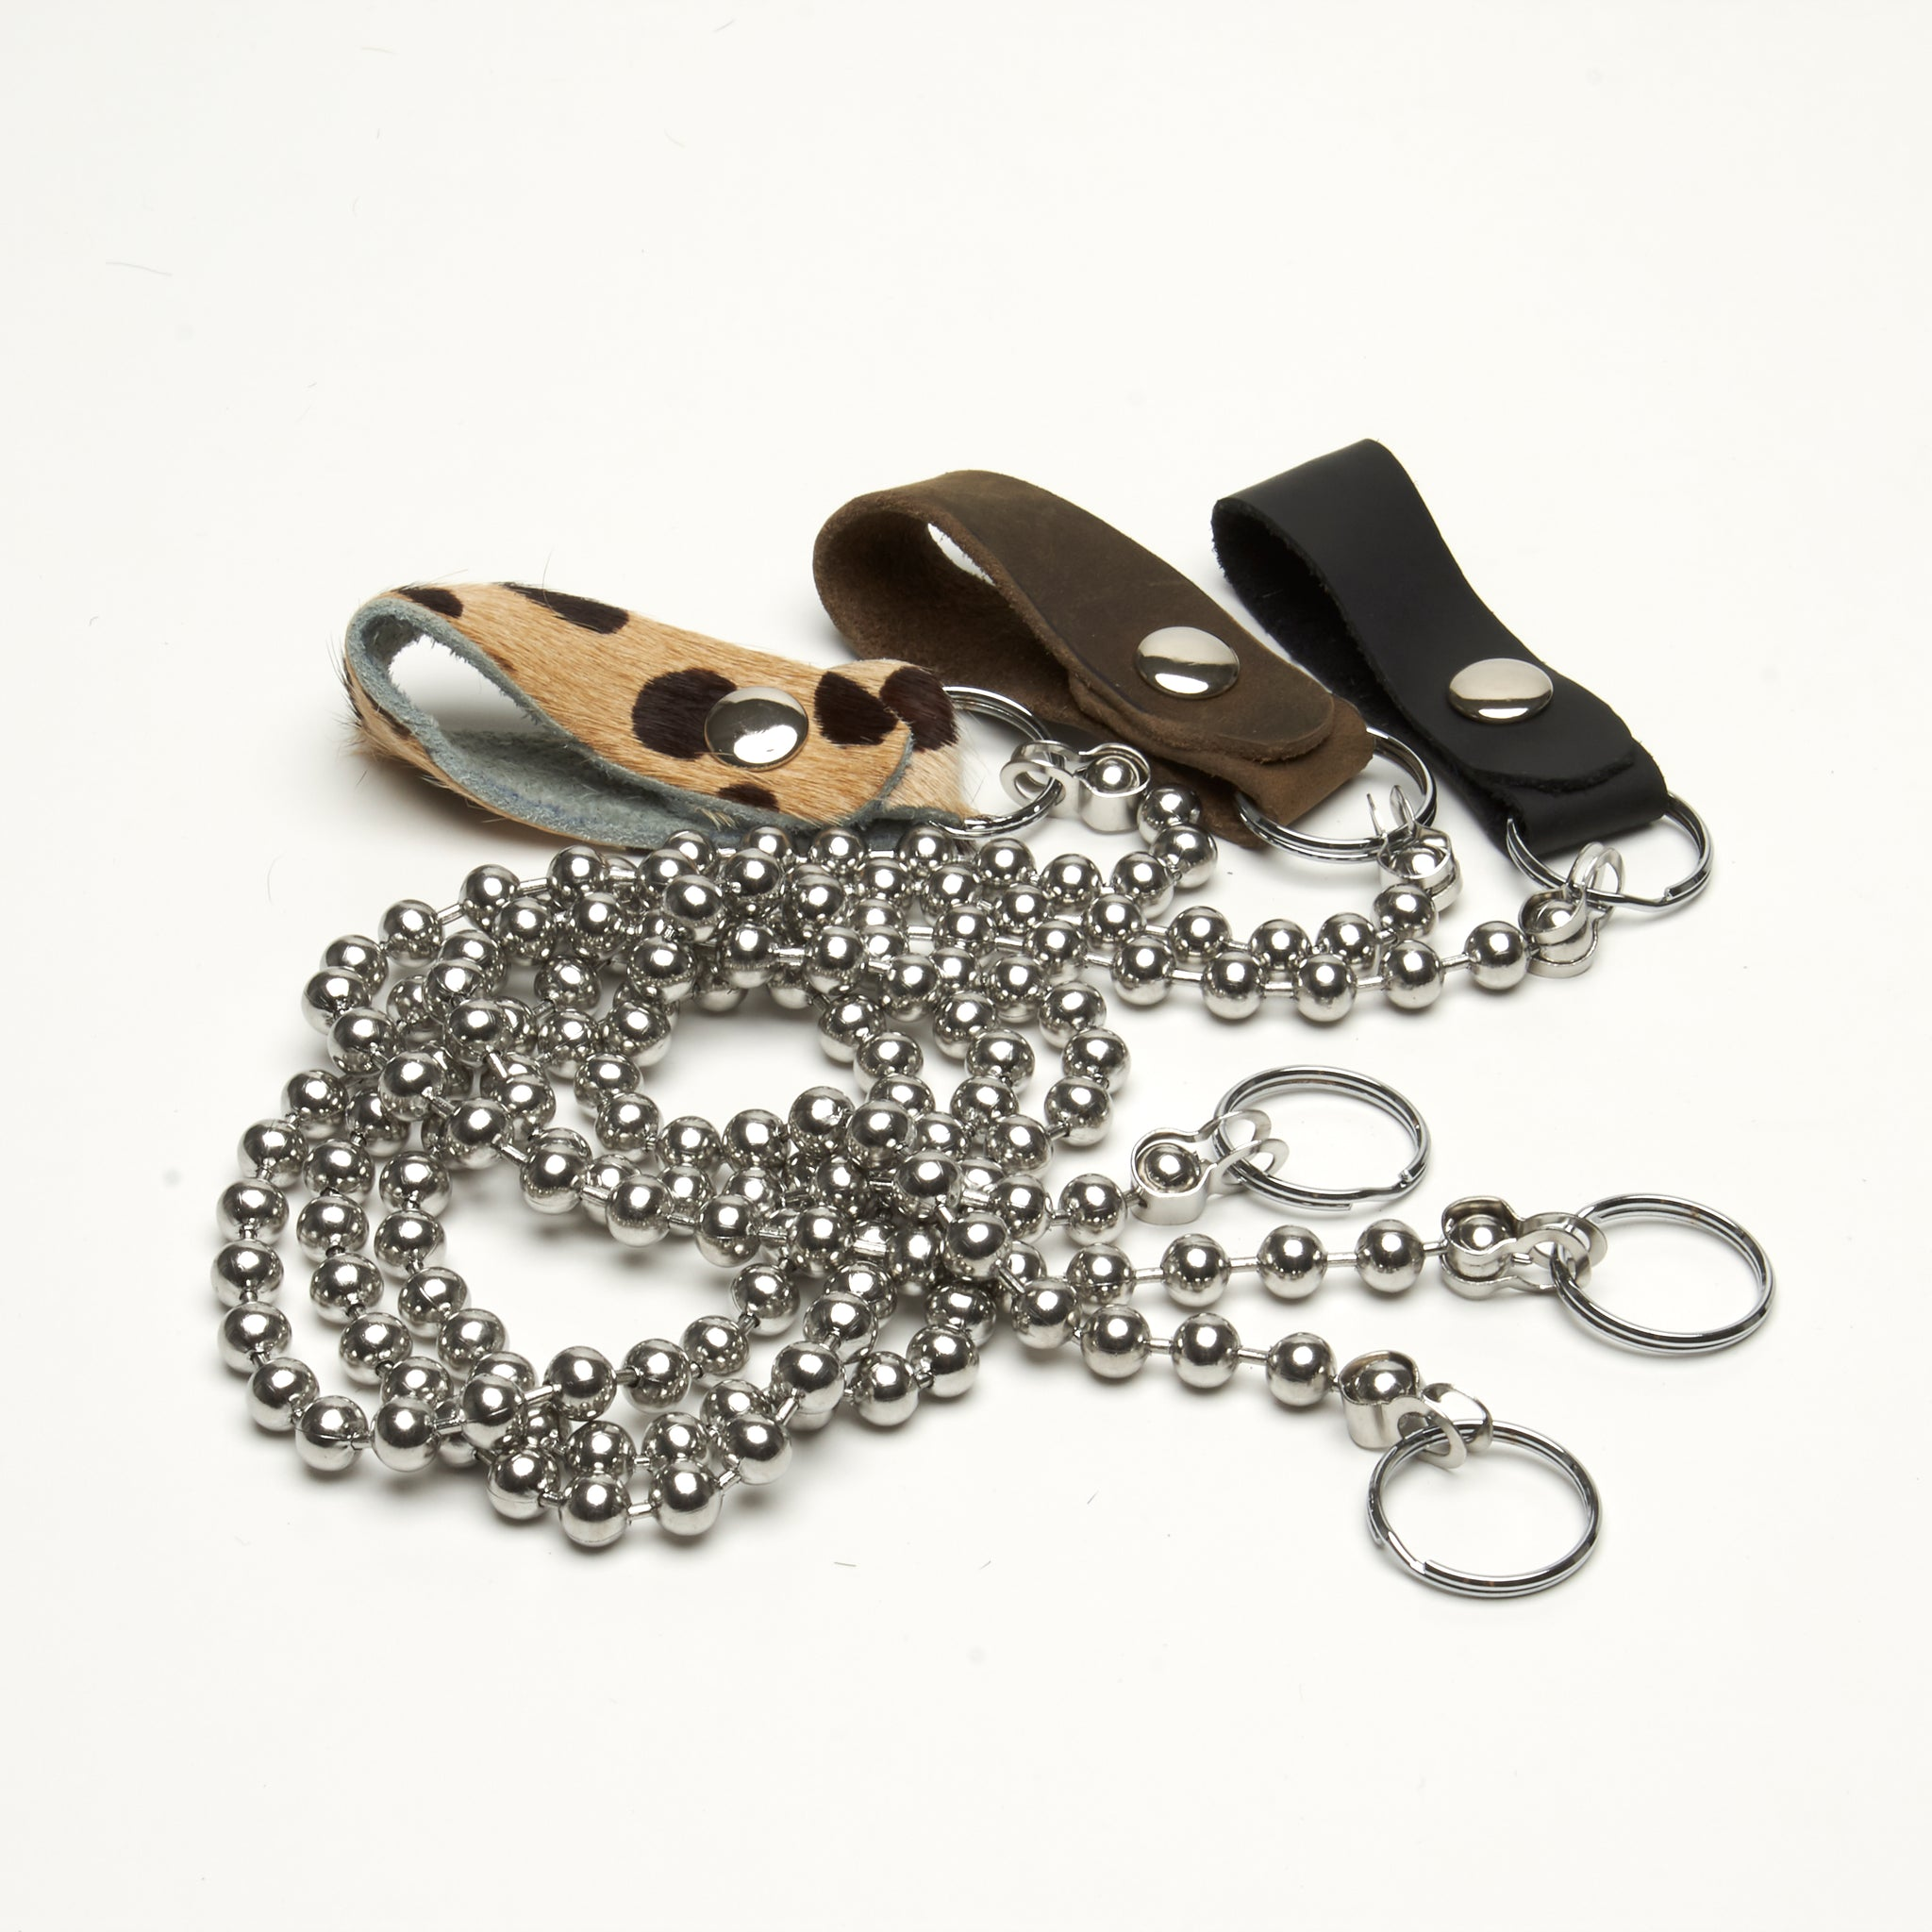 WALLET CHAIN 8 MM STAINLESS STEEL BALL BEADS WITH LEATHER SNAP CLOSURE. By NYET Jewelry.